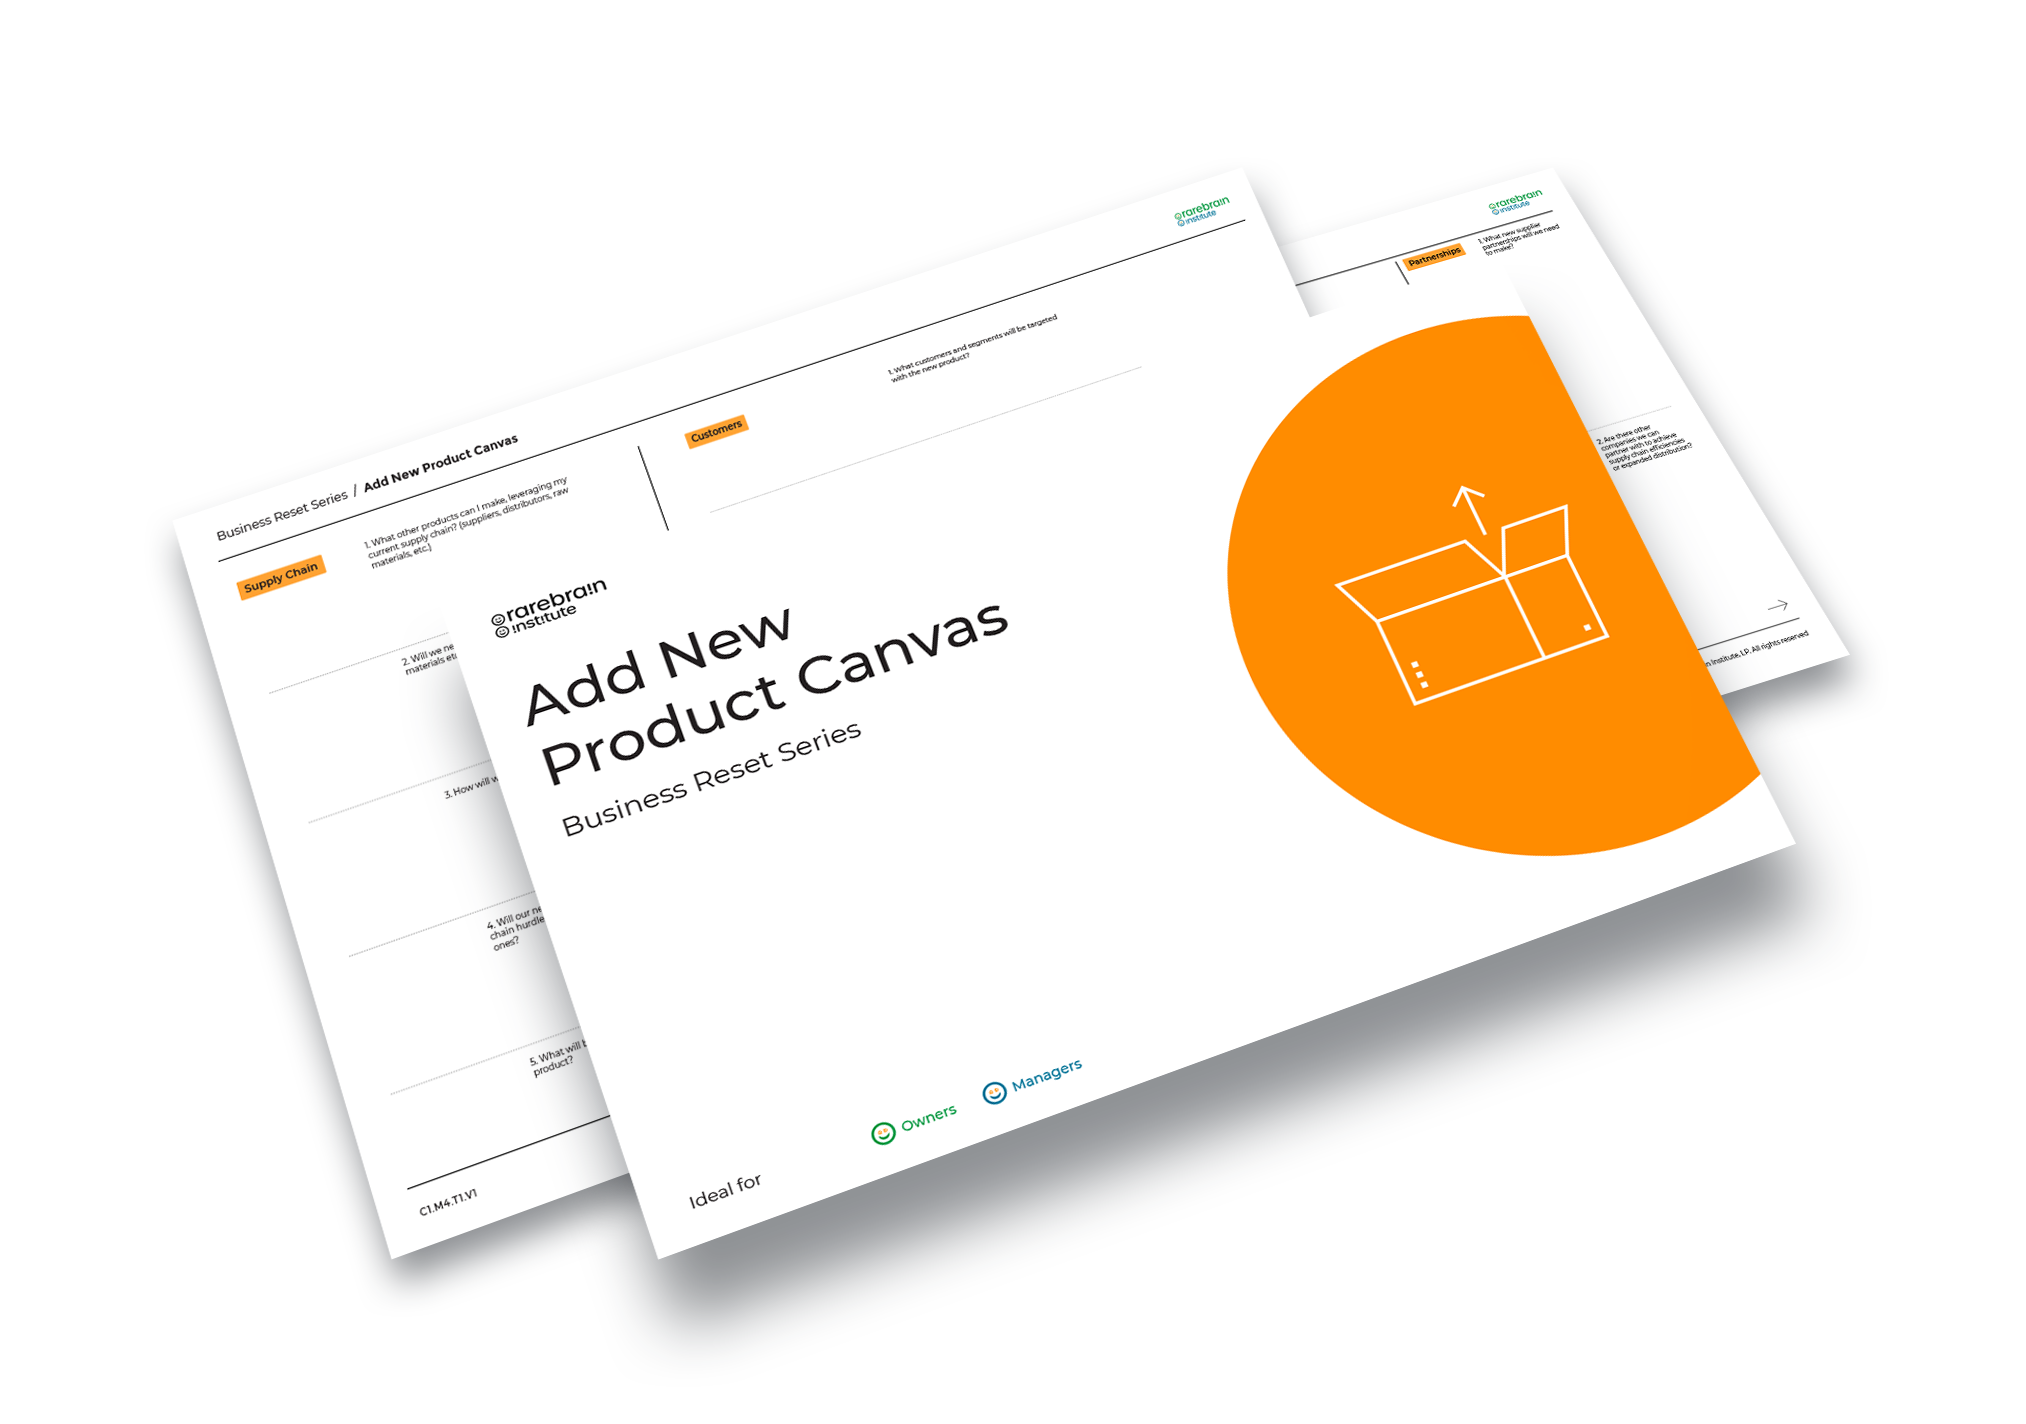 New Product Canvas